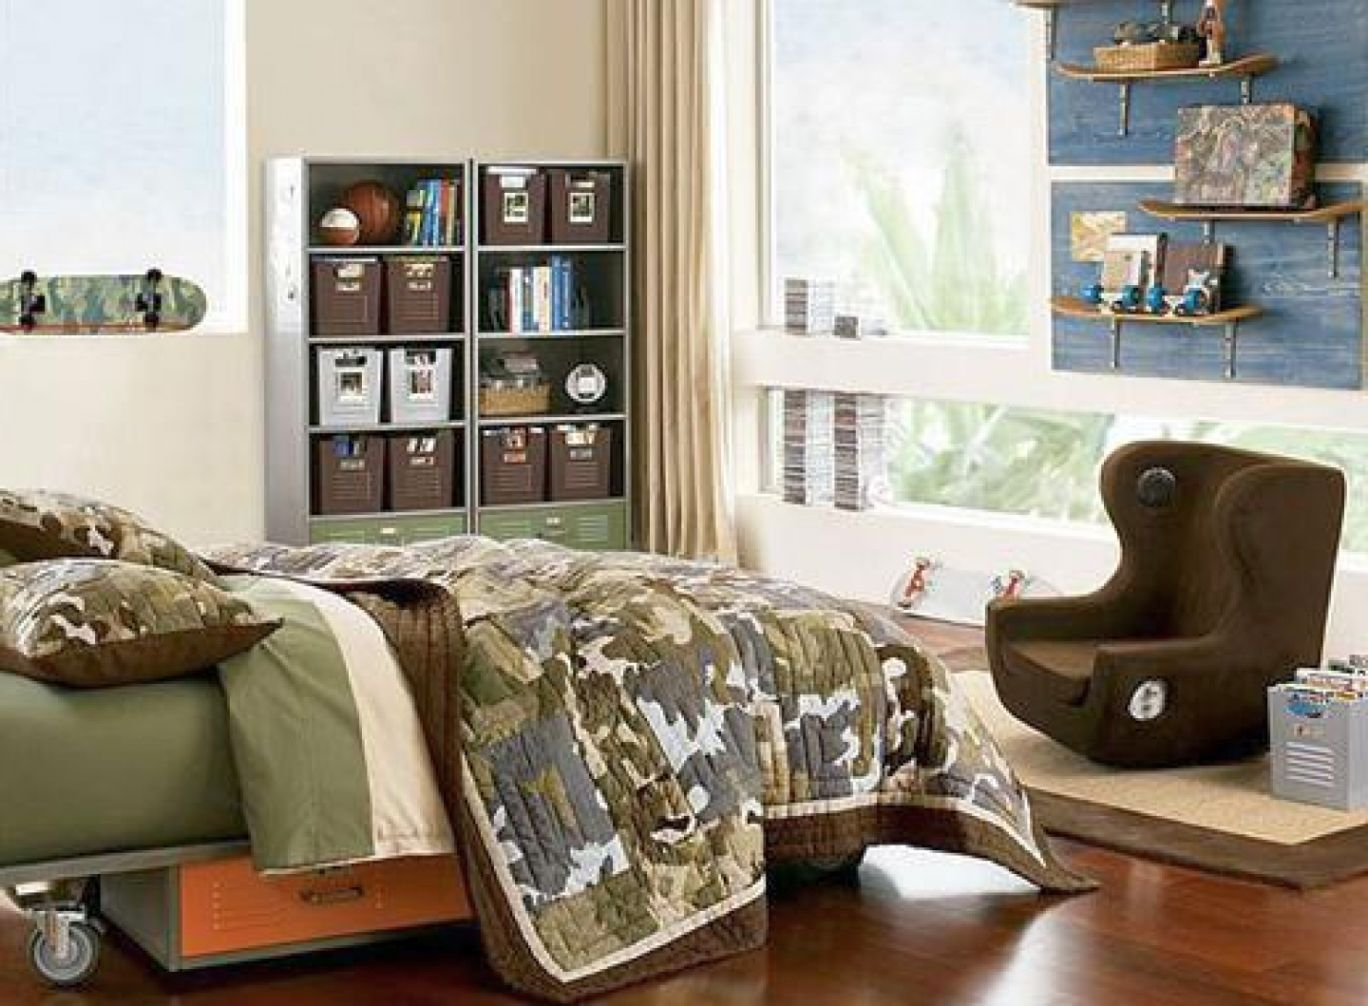 fabulous home decorating ideas bedrooms | 12 Superb Room Decor Ideas for Teenage Boys